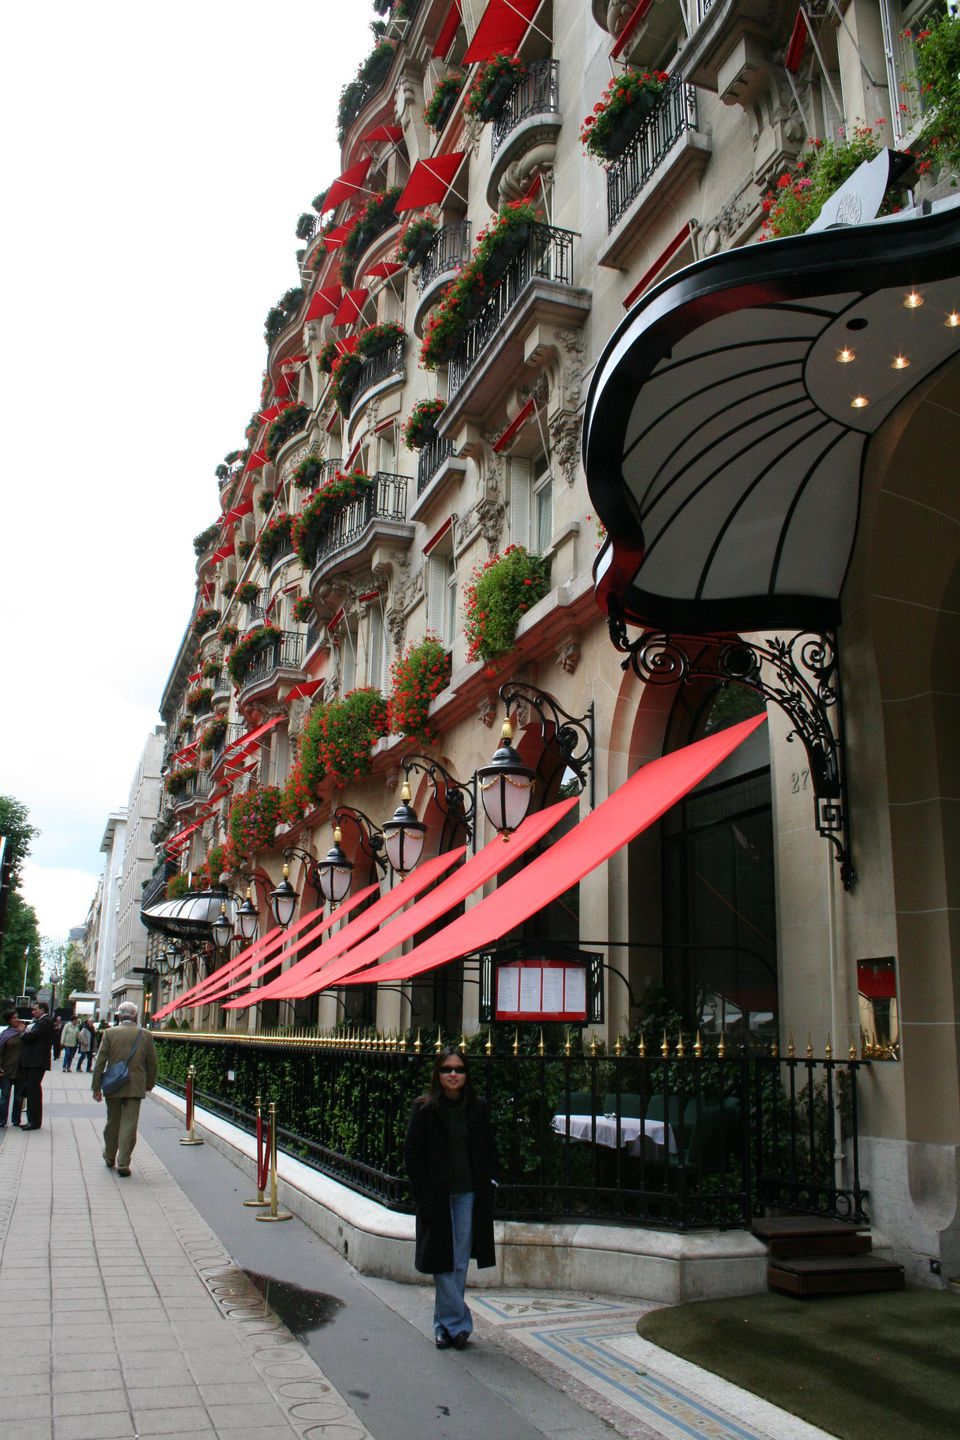 HOTEL PLAZA ATHENEE 25 av. Montaigne, Paris 75008, France